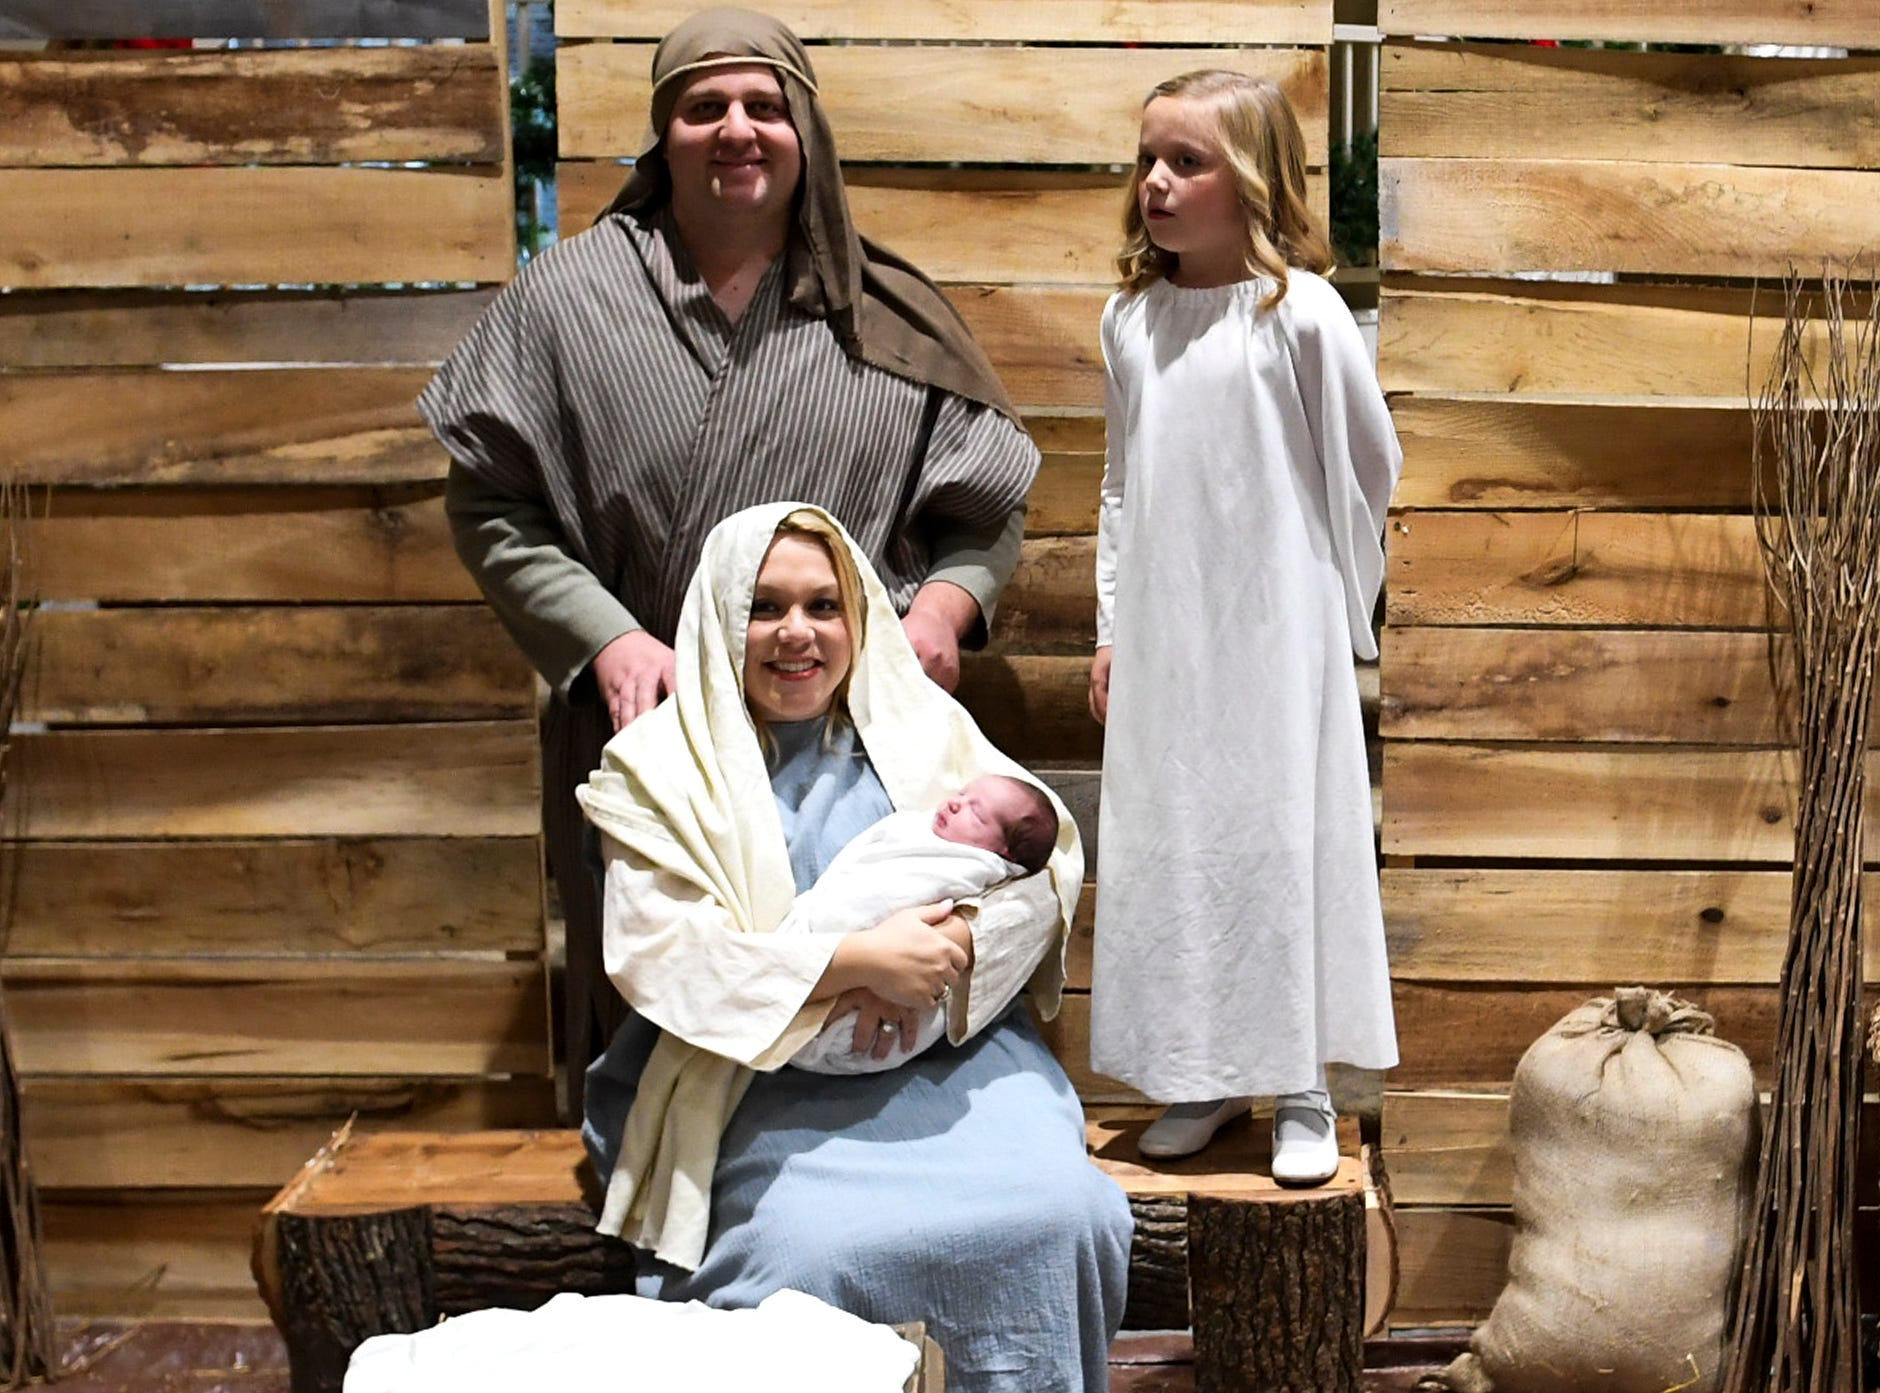 West Jackson Baptist Church hosted Christmas Eve at the church, Monday, December 24. A live Nativity scene was featured at the event.